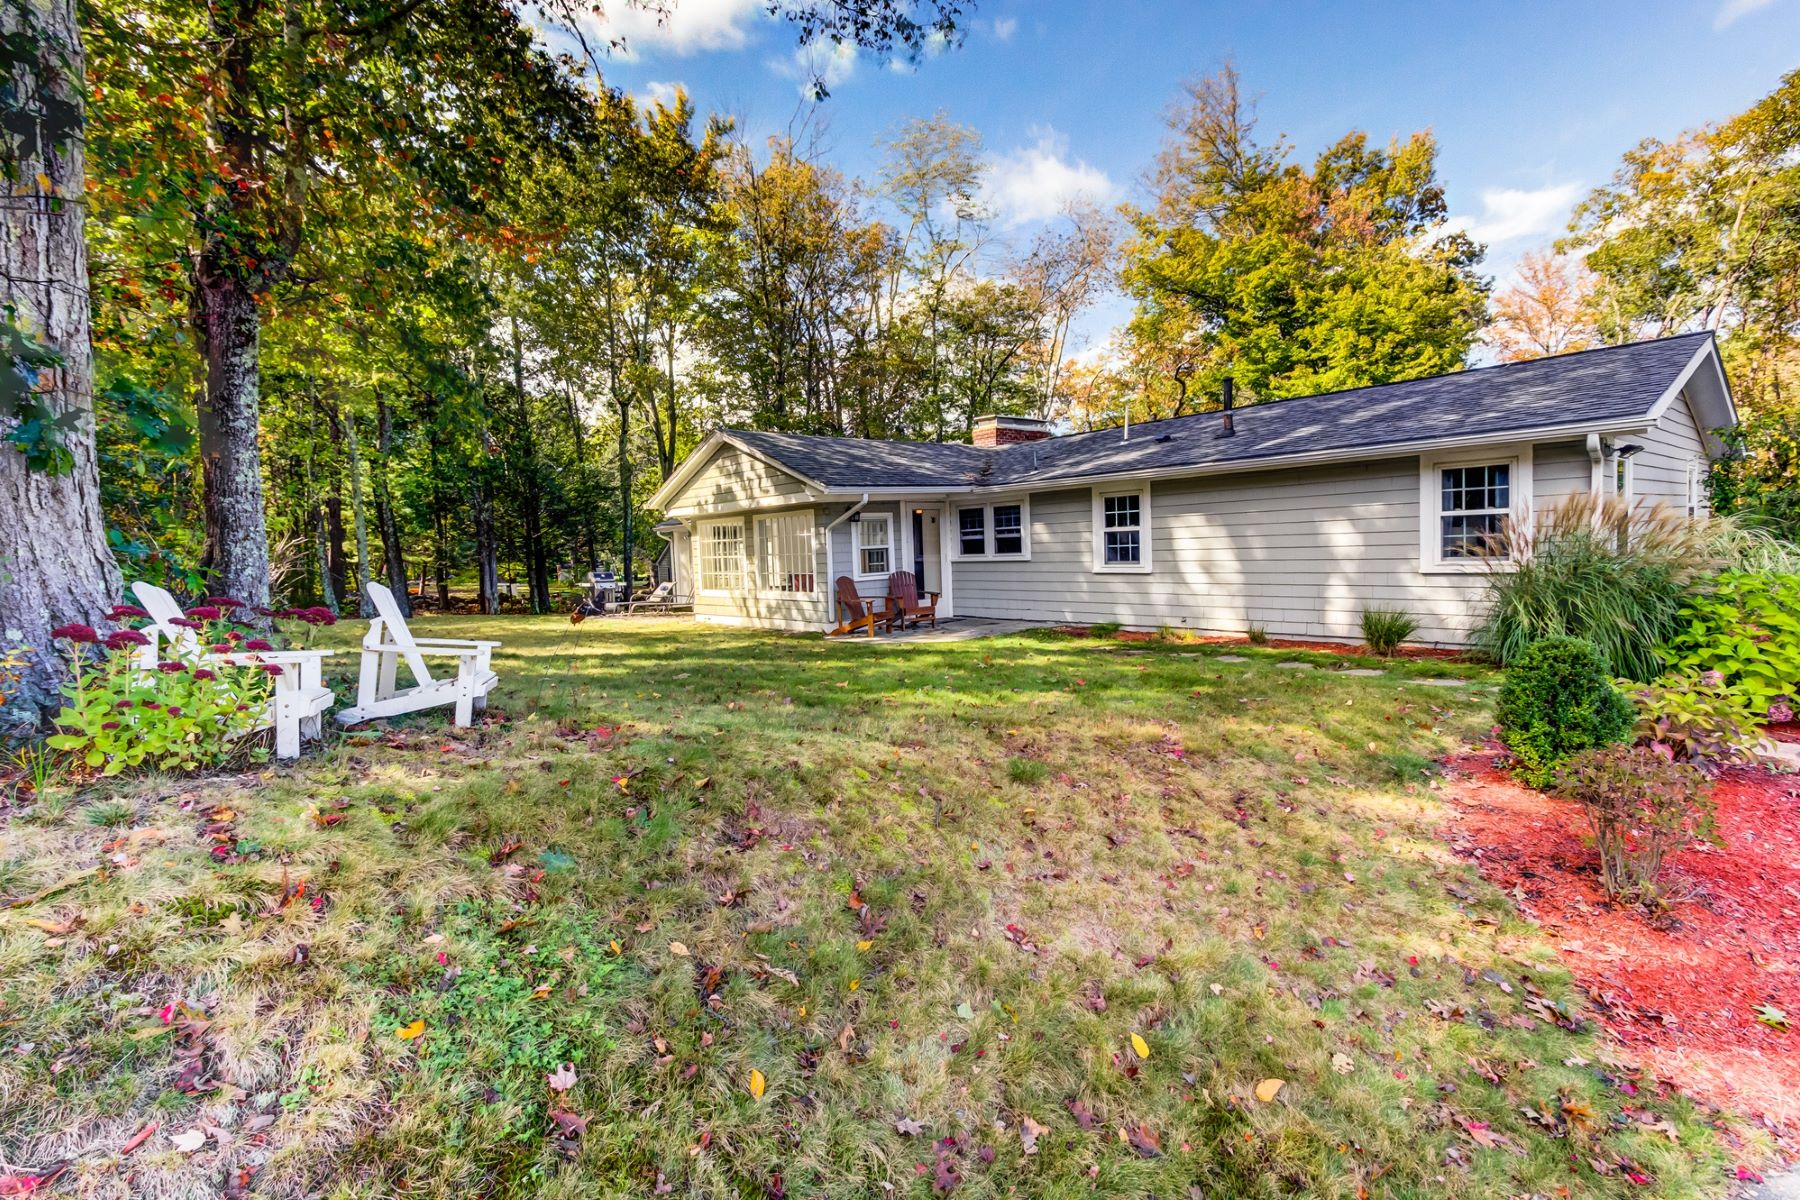 Single Family Home for Sale at Fantastic Expanded Ranch 216 Oregon Road Ashland, Massachusetts 01721 United States